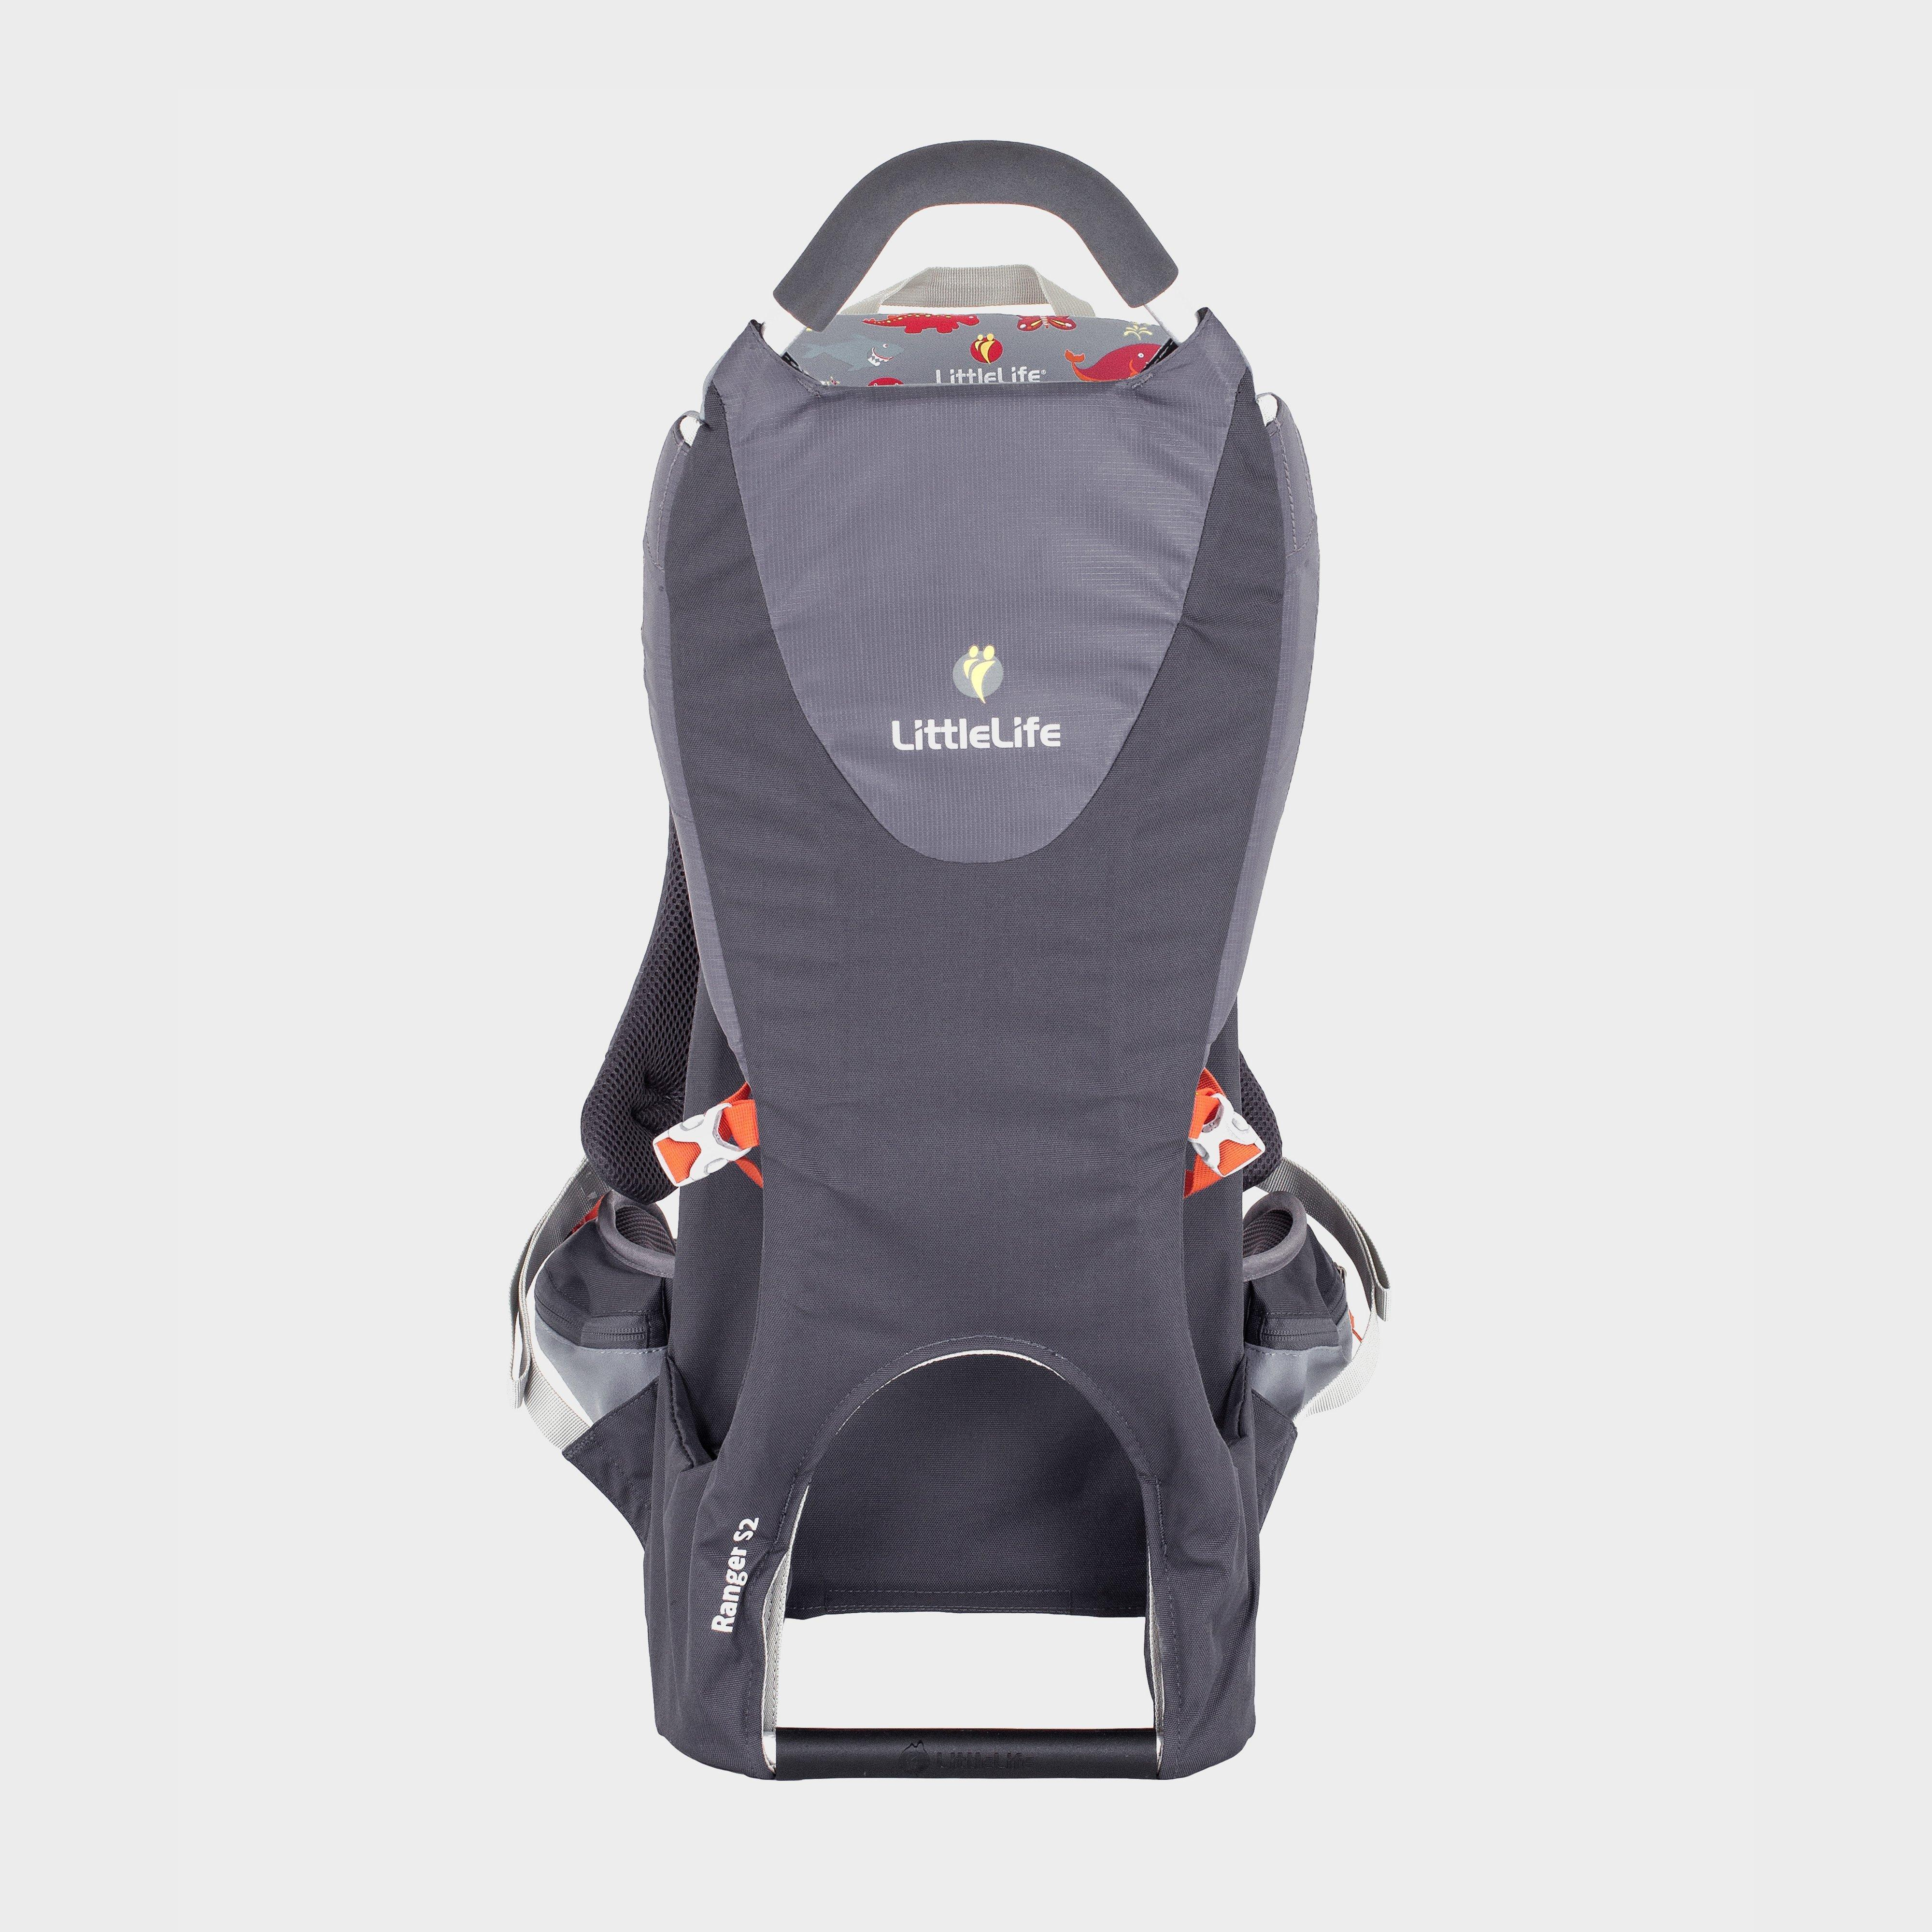 Littlelife Ranger S2 Child Carrier - Gry/Gry, Grey